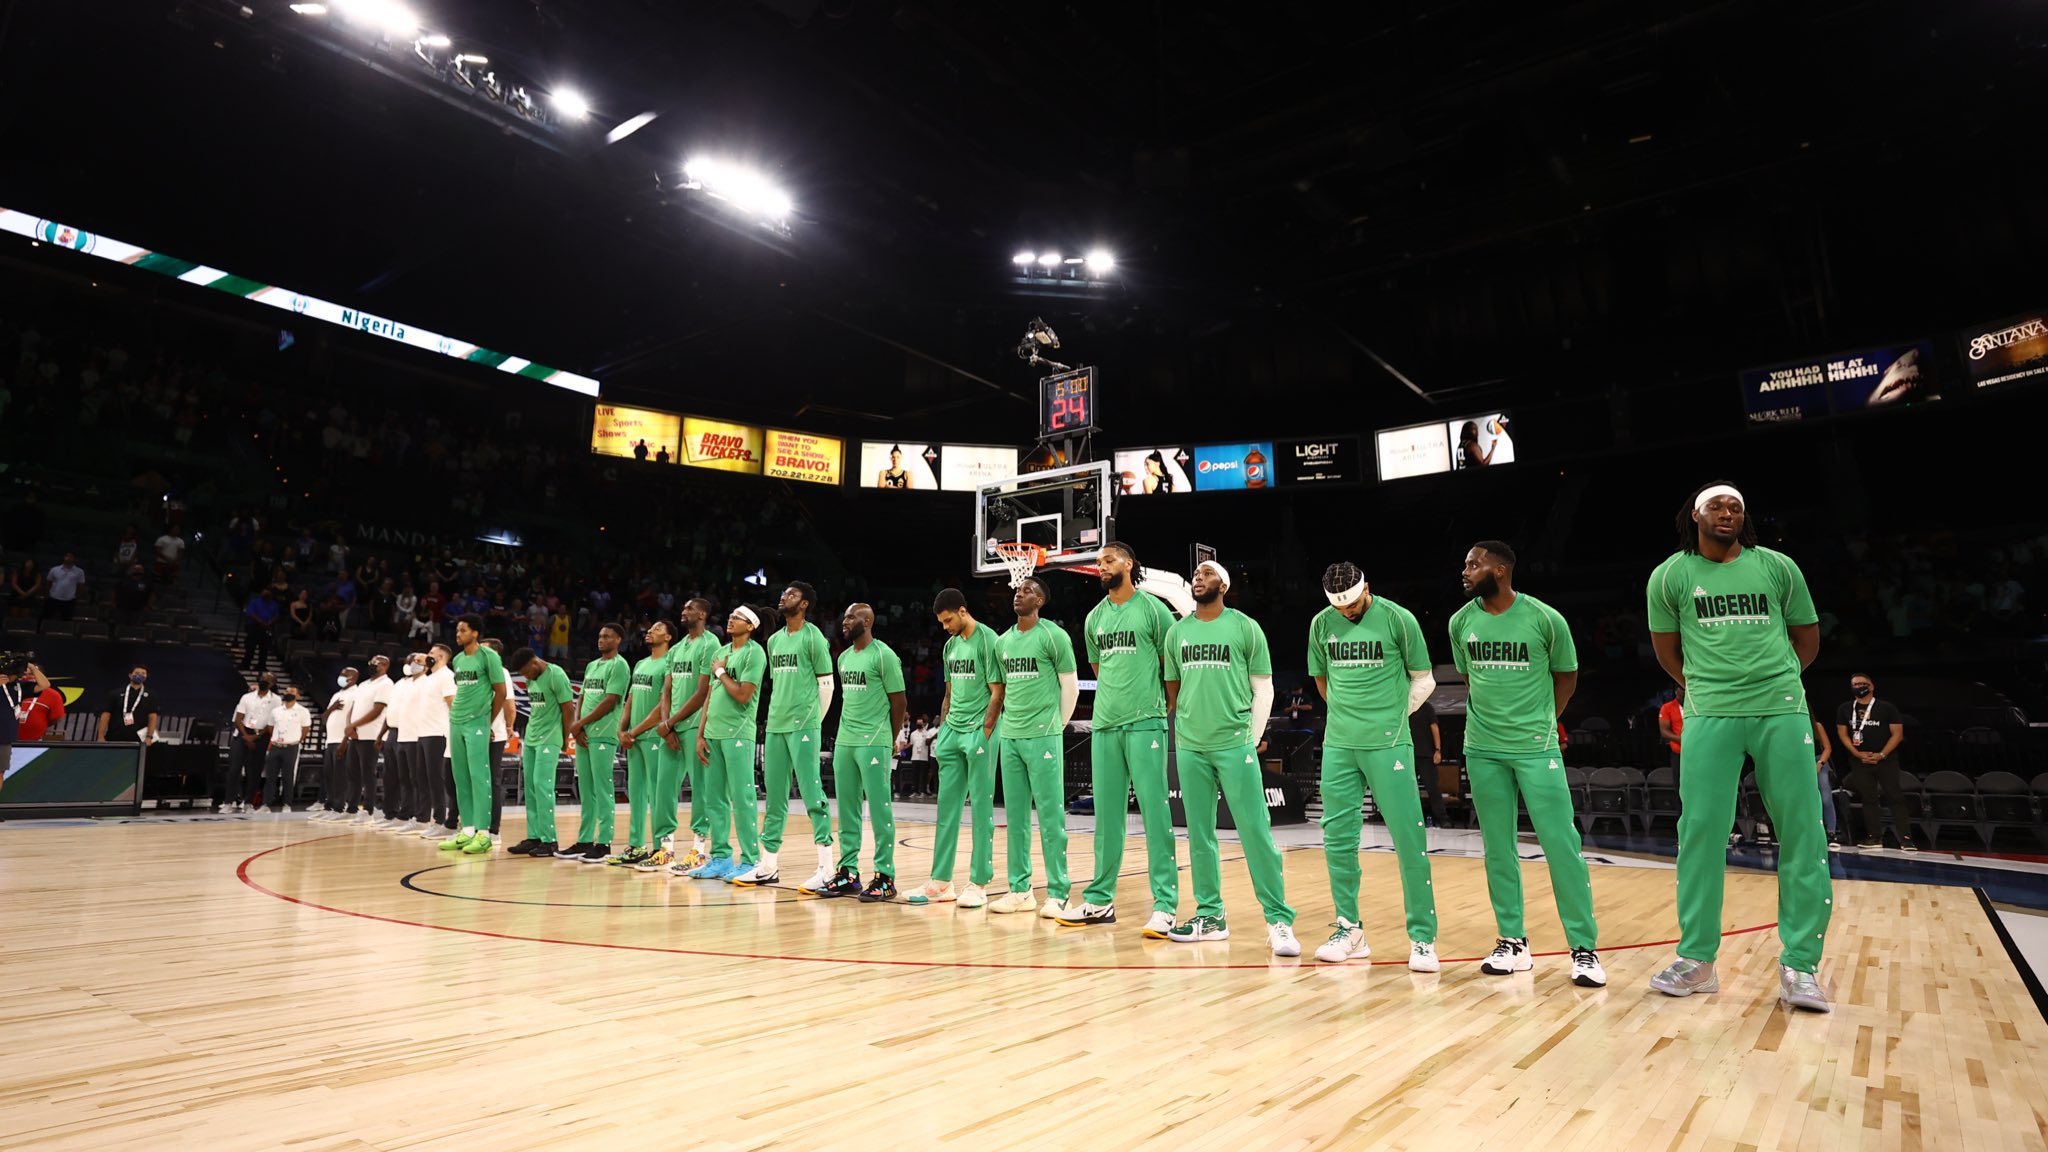 Claim that Nigeria's basketball team, D'Tigers now rank 4th in the world is MISLEADING